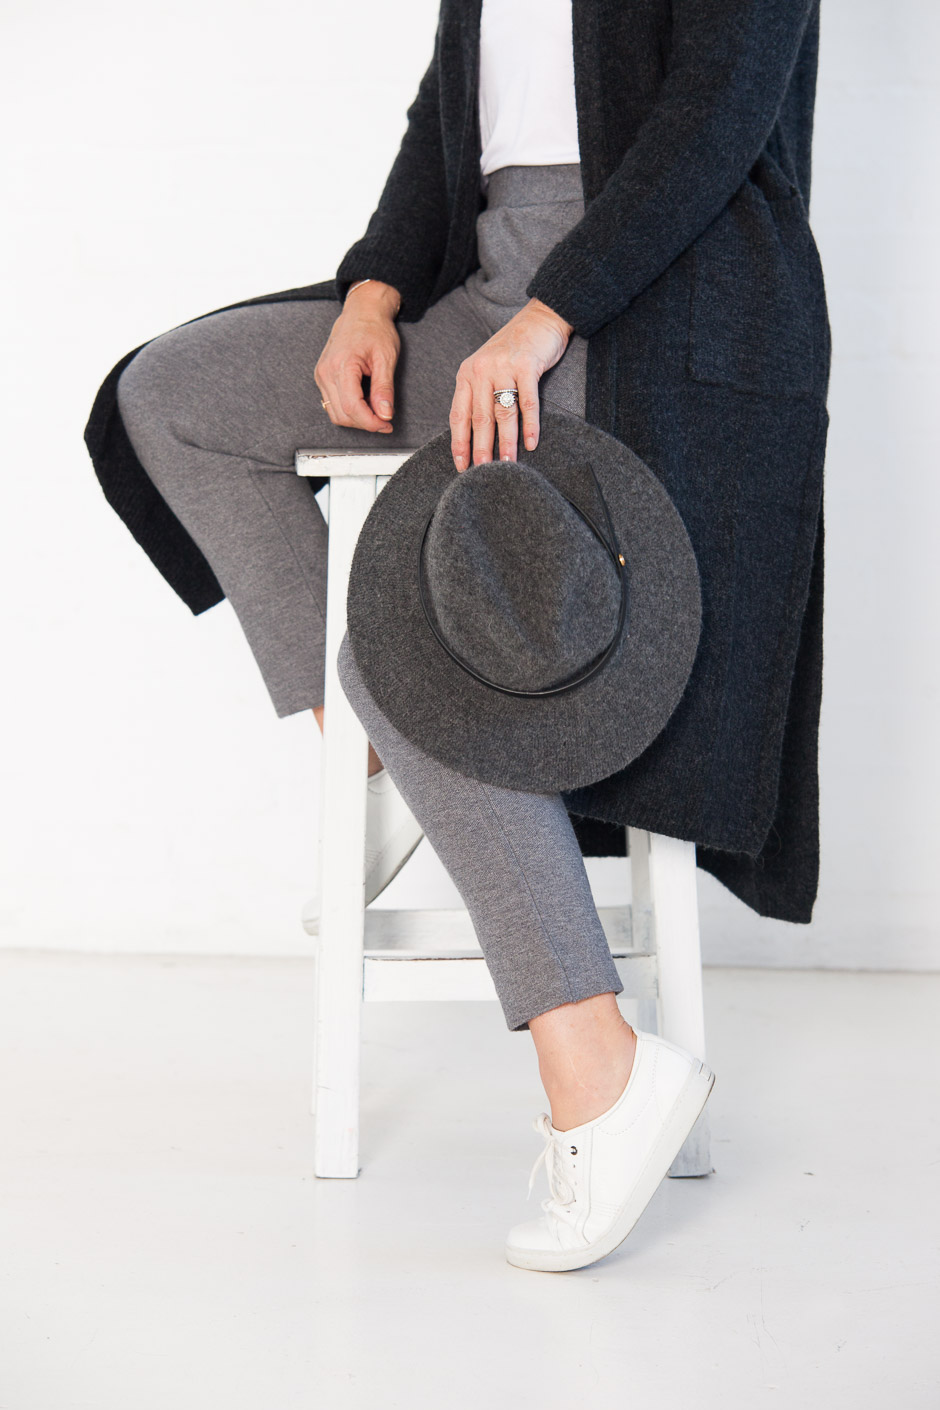 Winter wardrobe styling tips from Offtherails